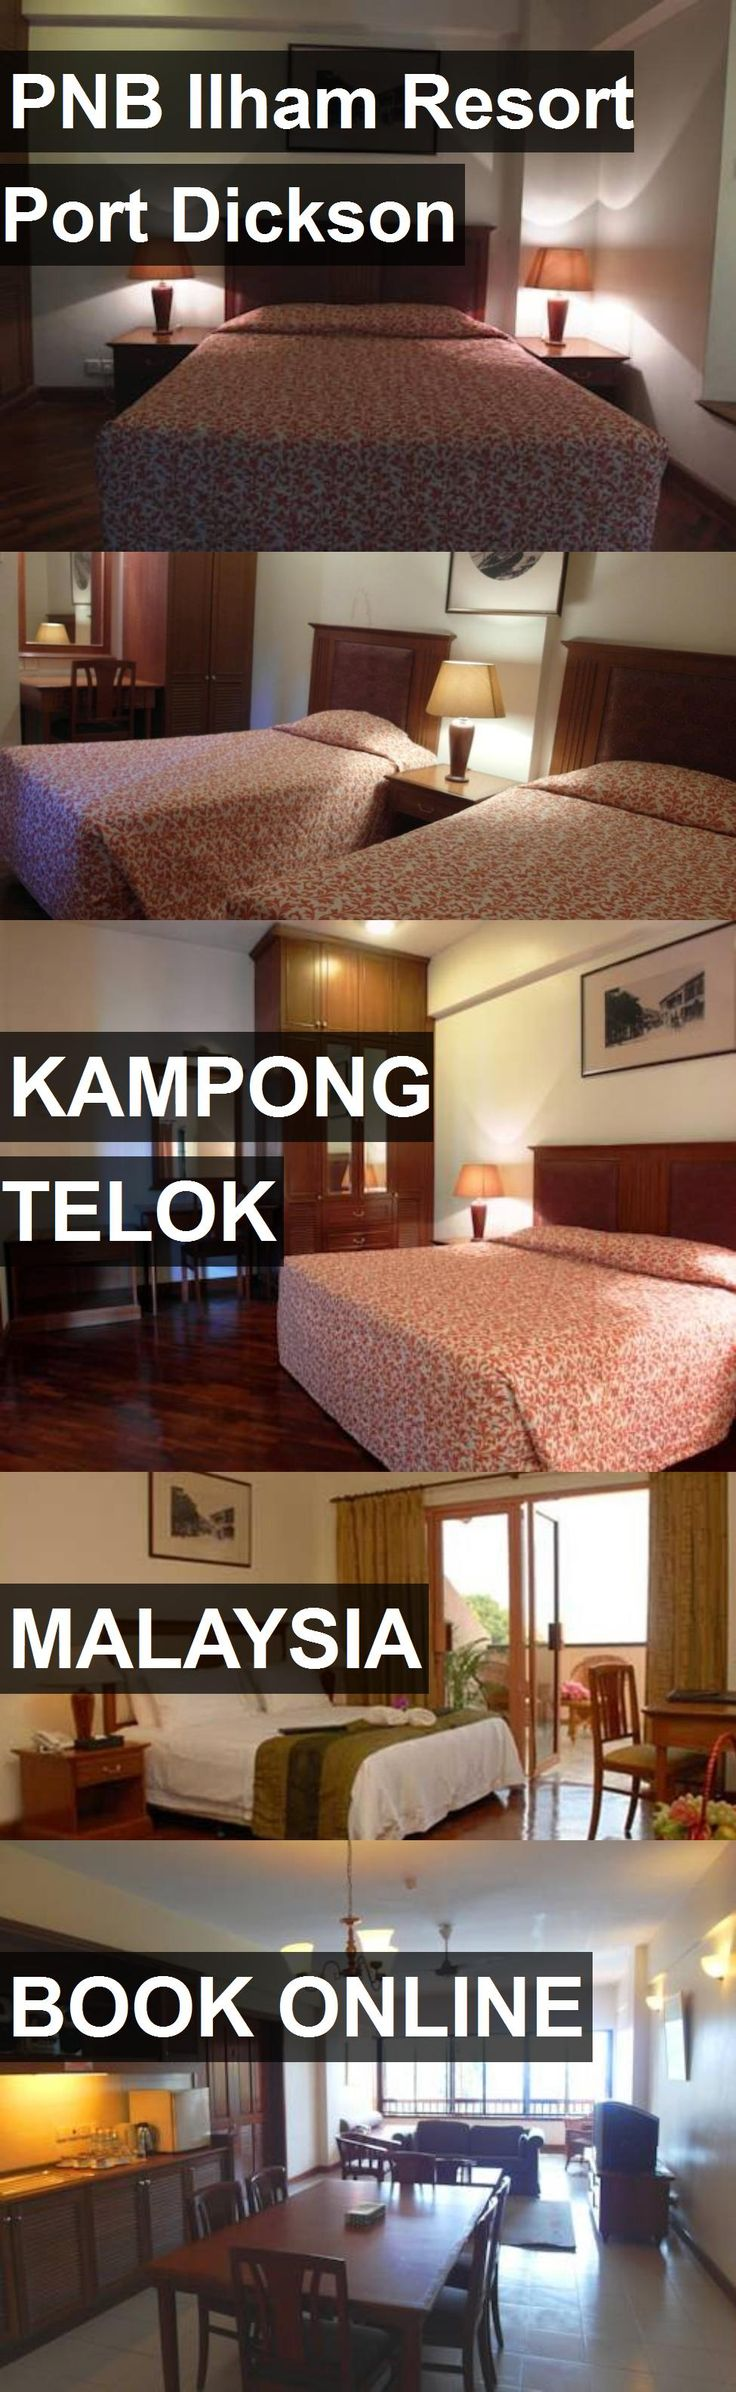 Hotel PNB Ilham Resort Port Dickson in Kampong Telok, Malaysia. For more information, photos, reviews and best prices please follow the link. #Malaysia #KampongTelok #PNBIlhamResortPortDickson #hotel #travel #vacation